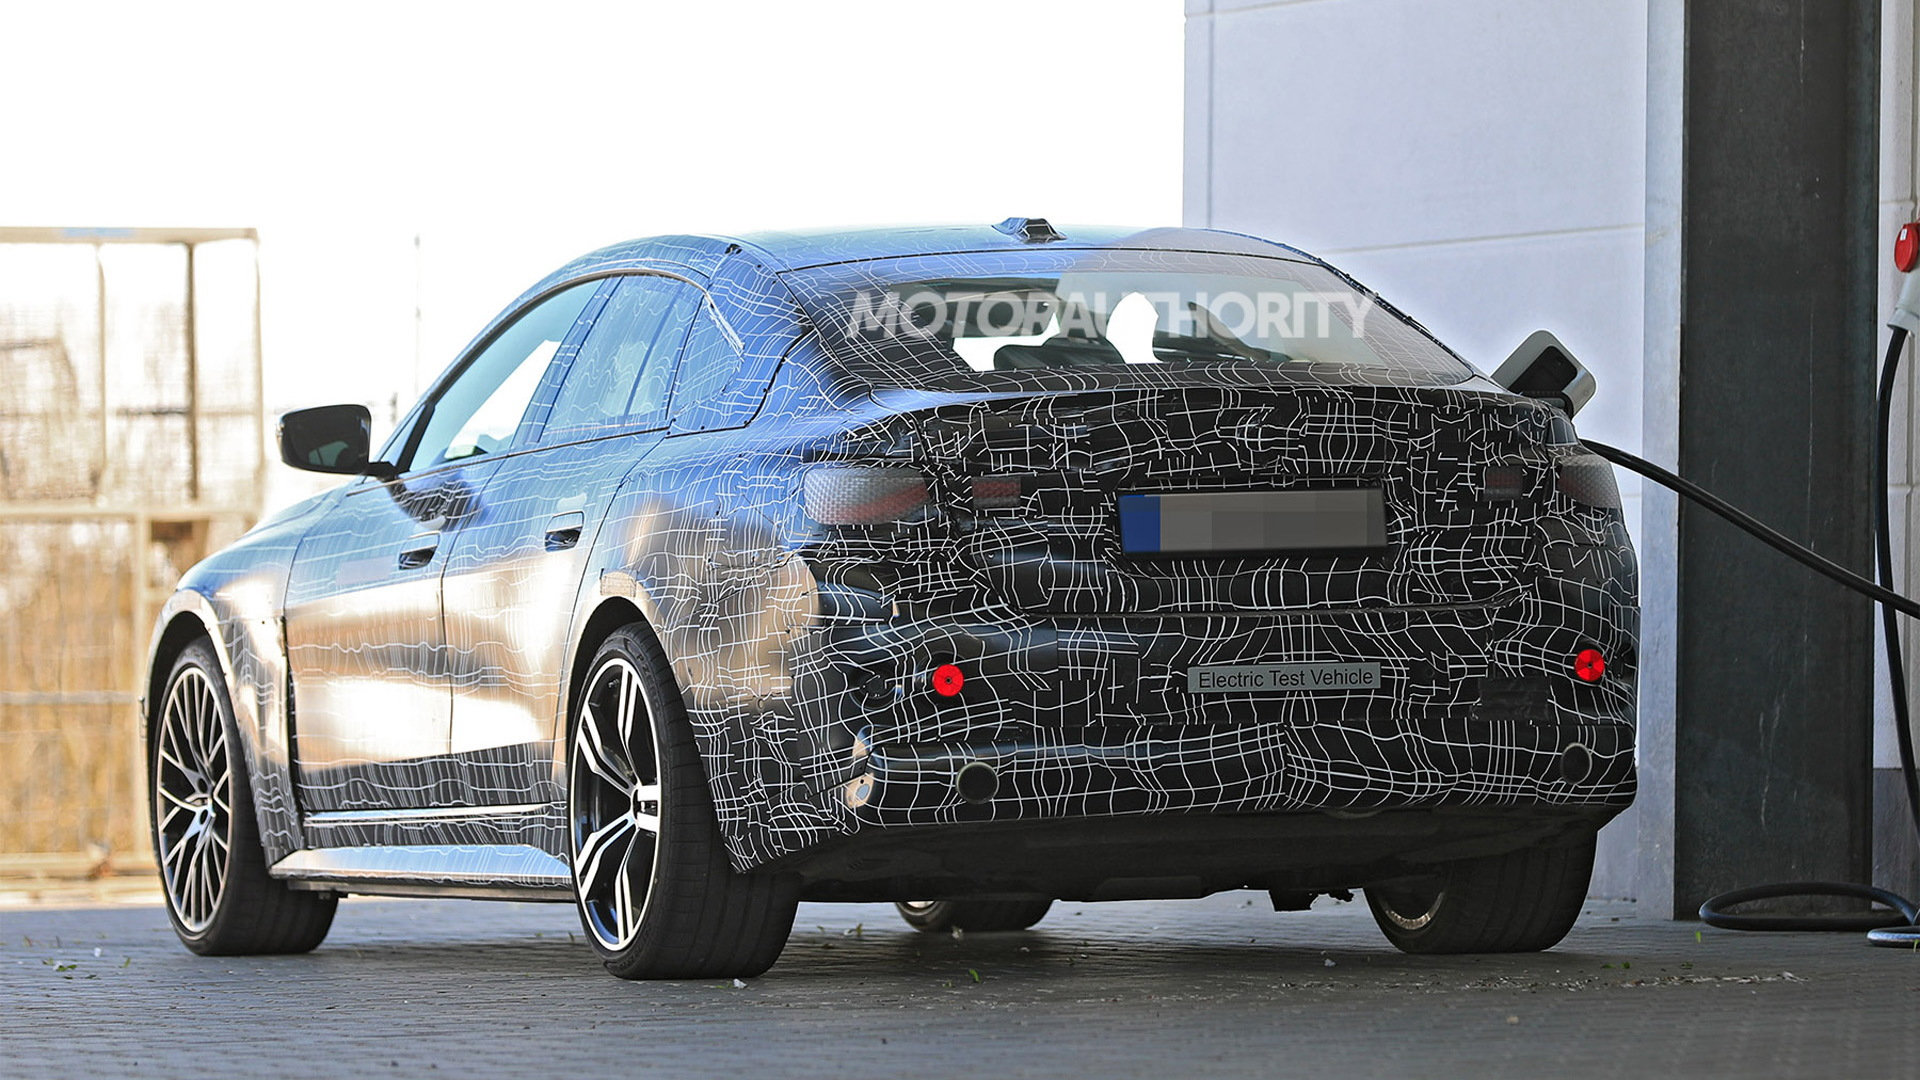 2022 BMW i4 spy shots - Photo credit: S. Baldauf/SB-Medien